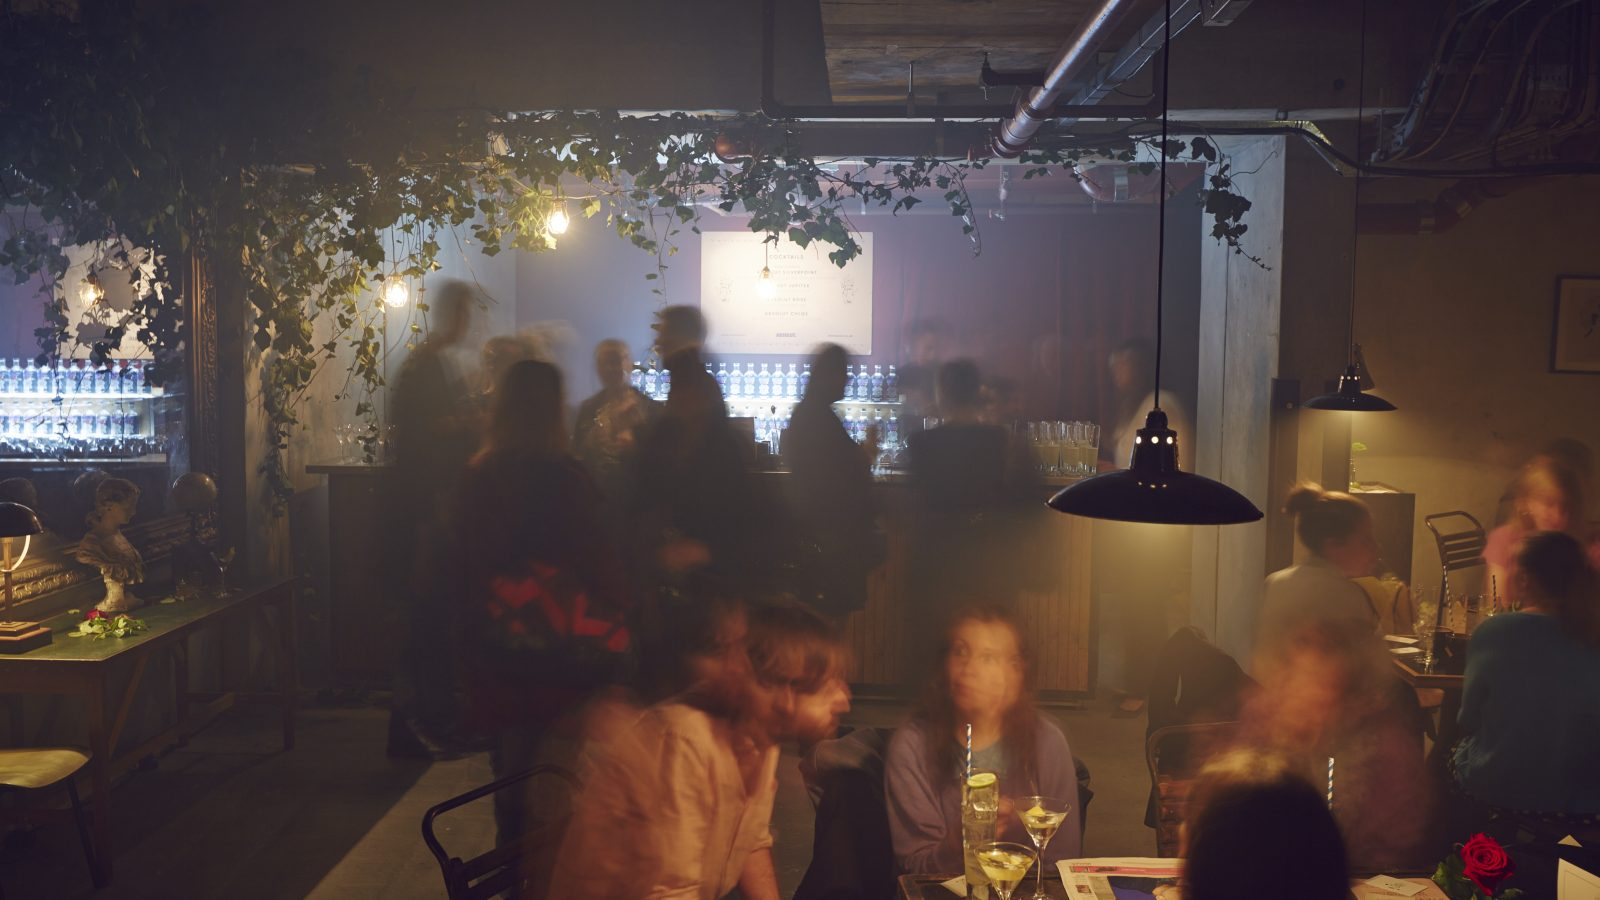 Blurred image of a bar setting with various group of people sitting at tables and standing by the bar